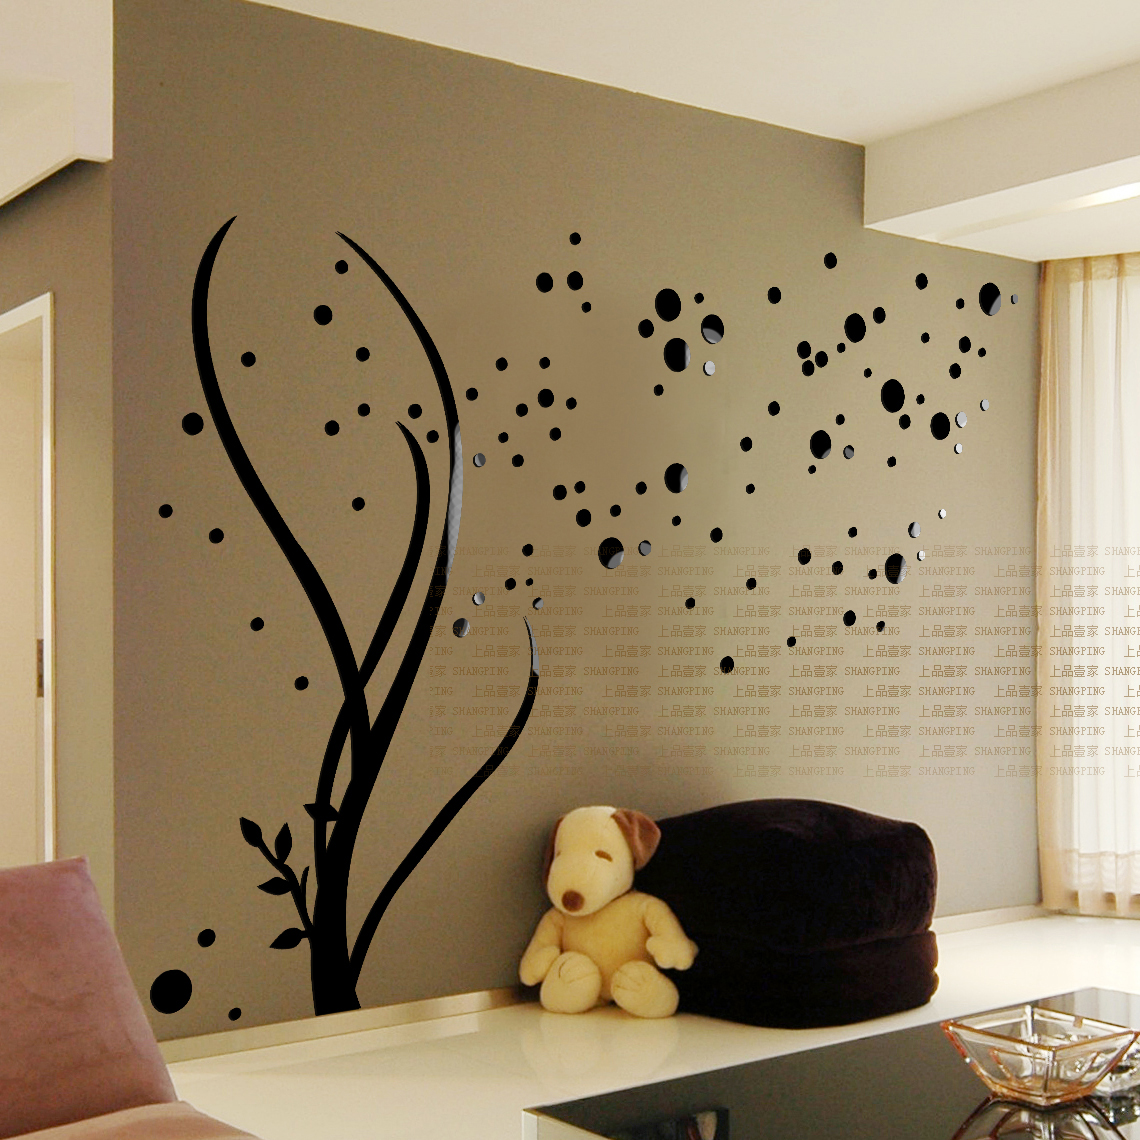 Star Bedroom Decor Star Wall Decor Star Wall Decor Laughing Water Brewing On Sich